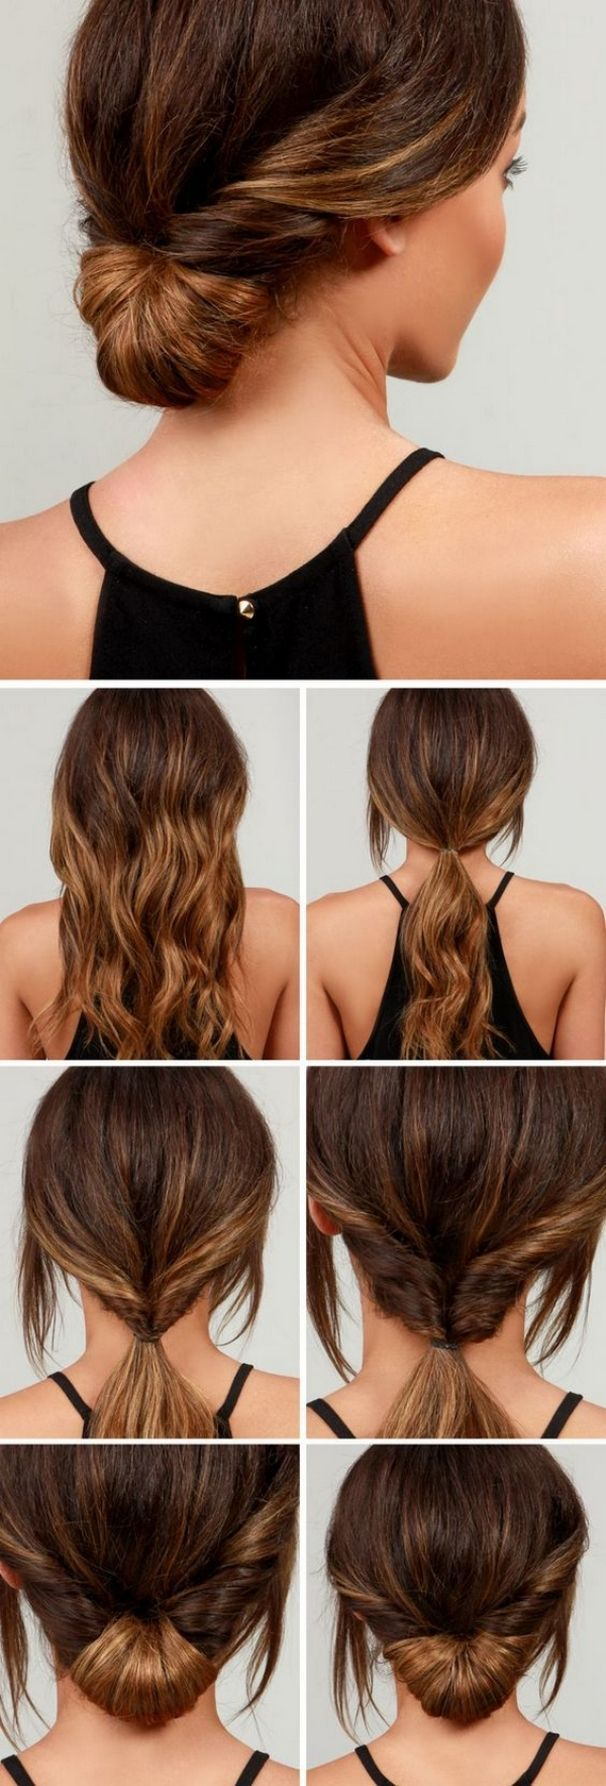 long summer haircuts 25 trending s hairstyles ideas on 3439 | 333104a1913563afe1907dab5177485e